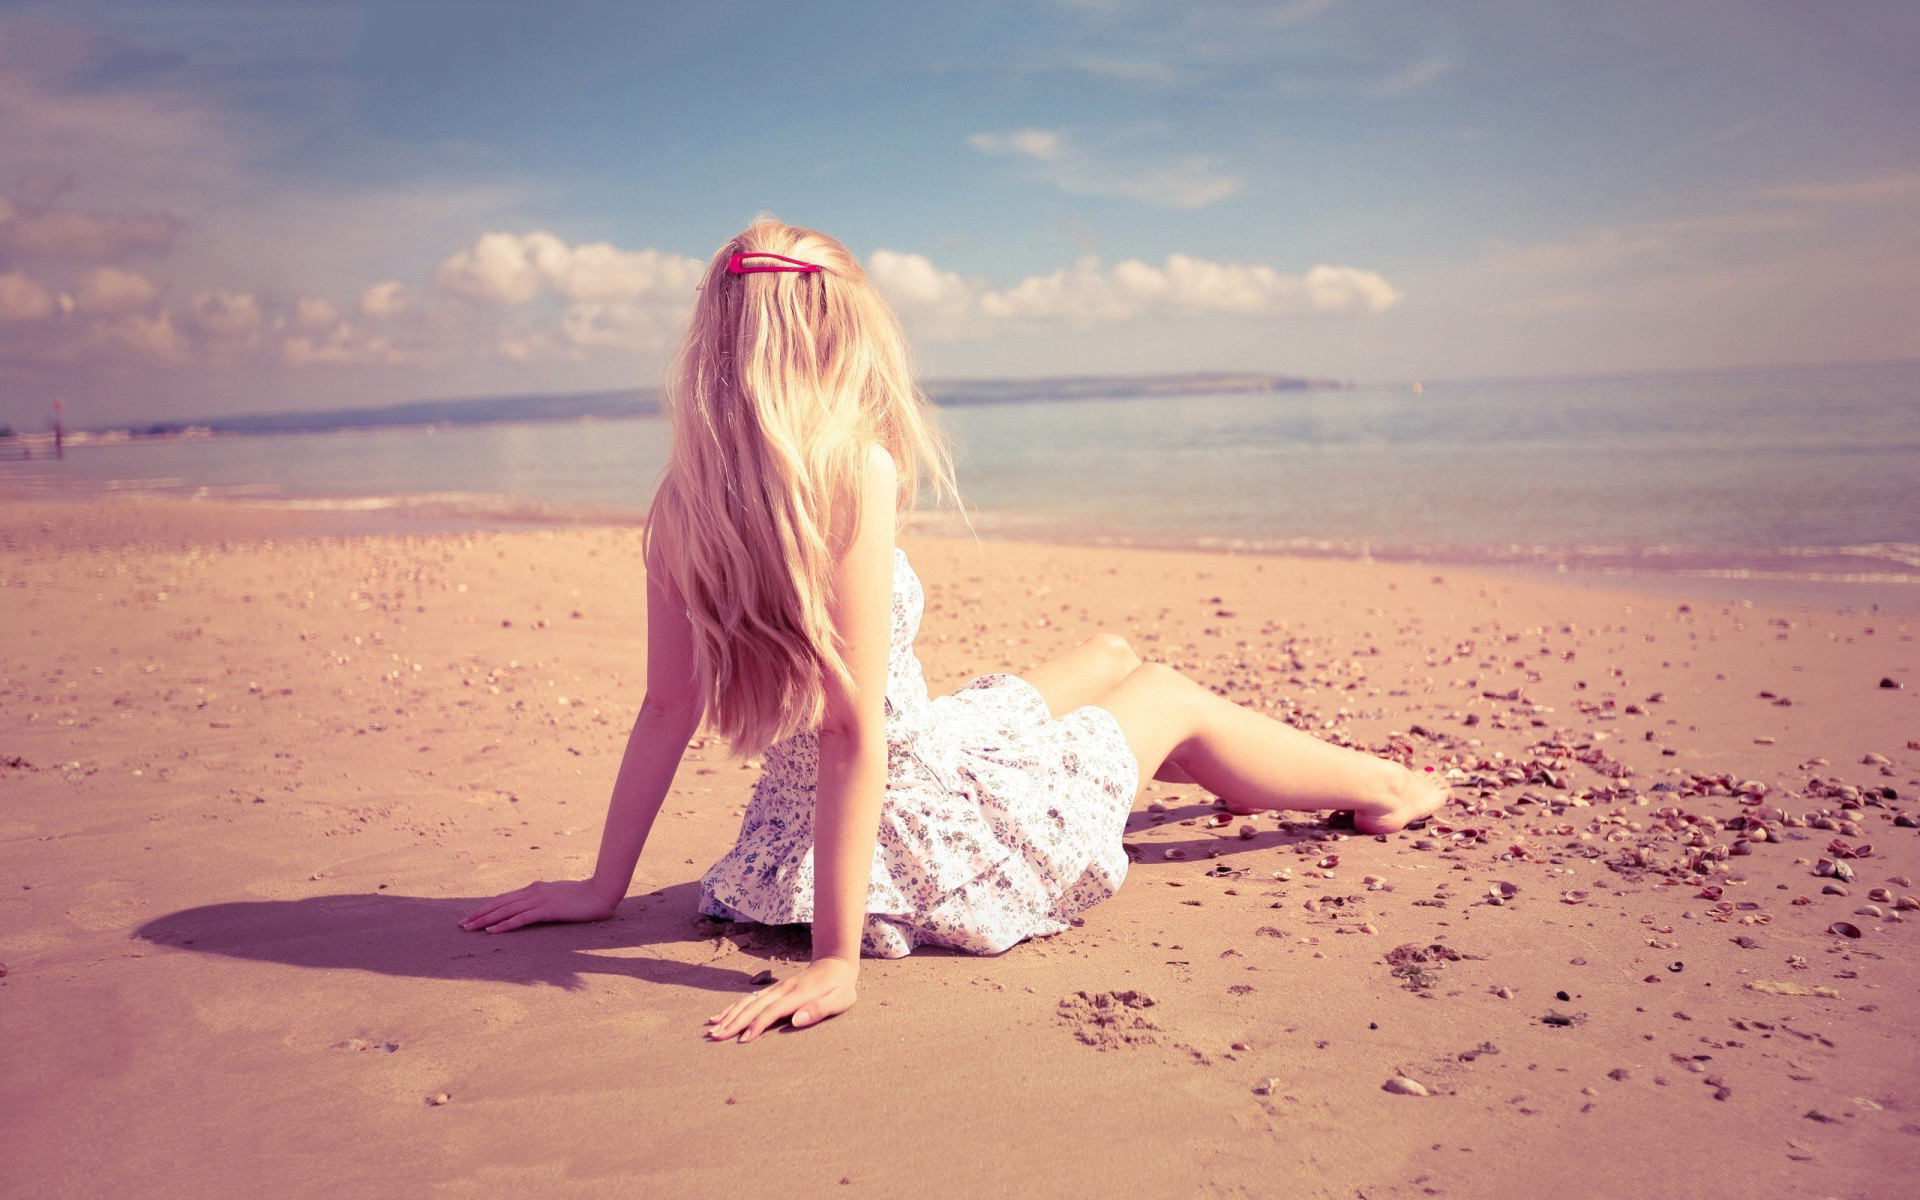 Lonely girl sitting on beach